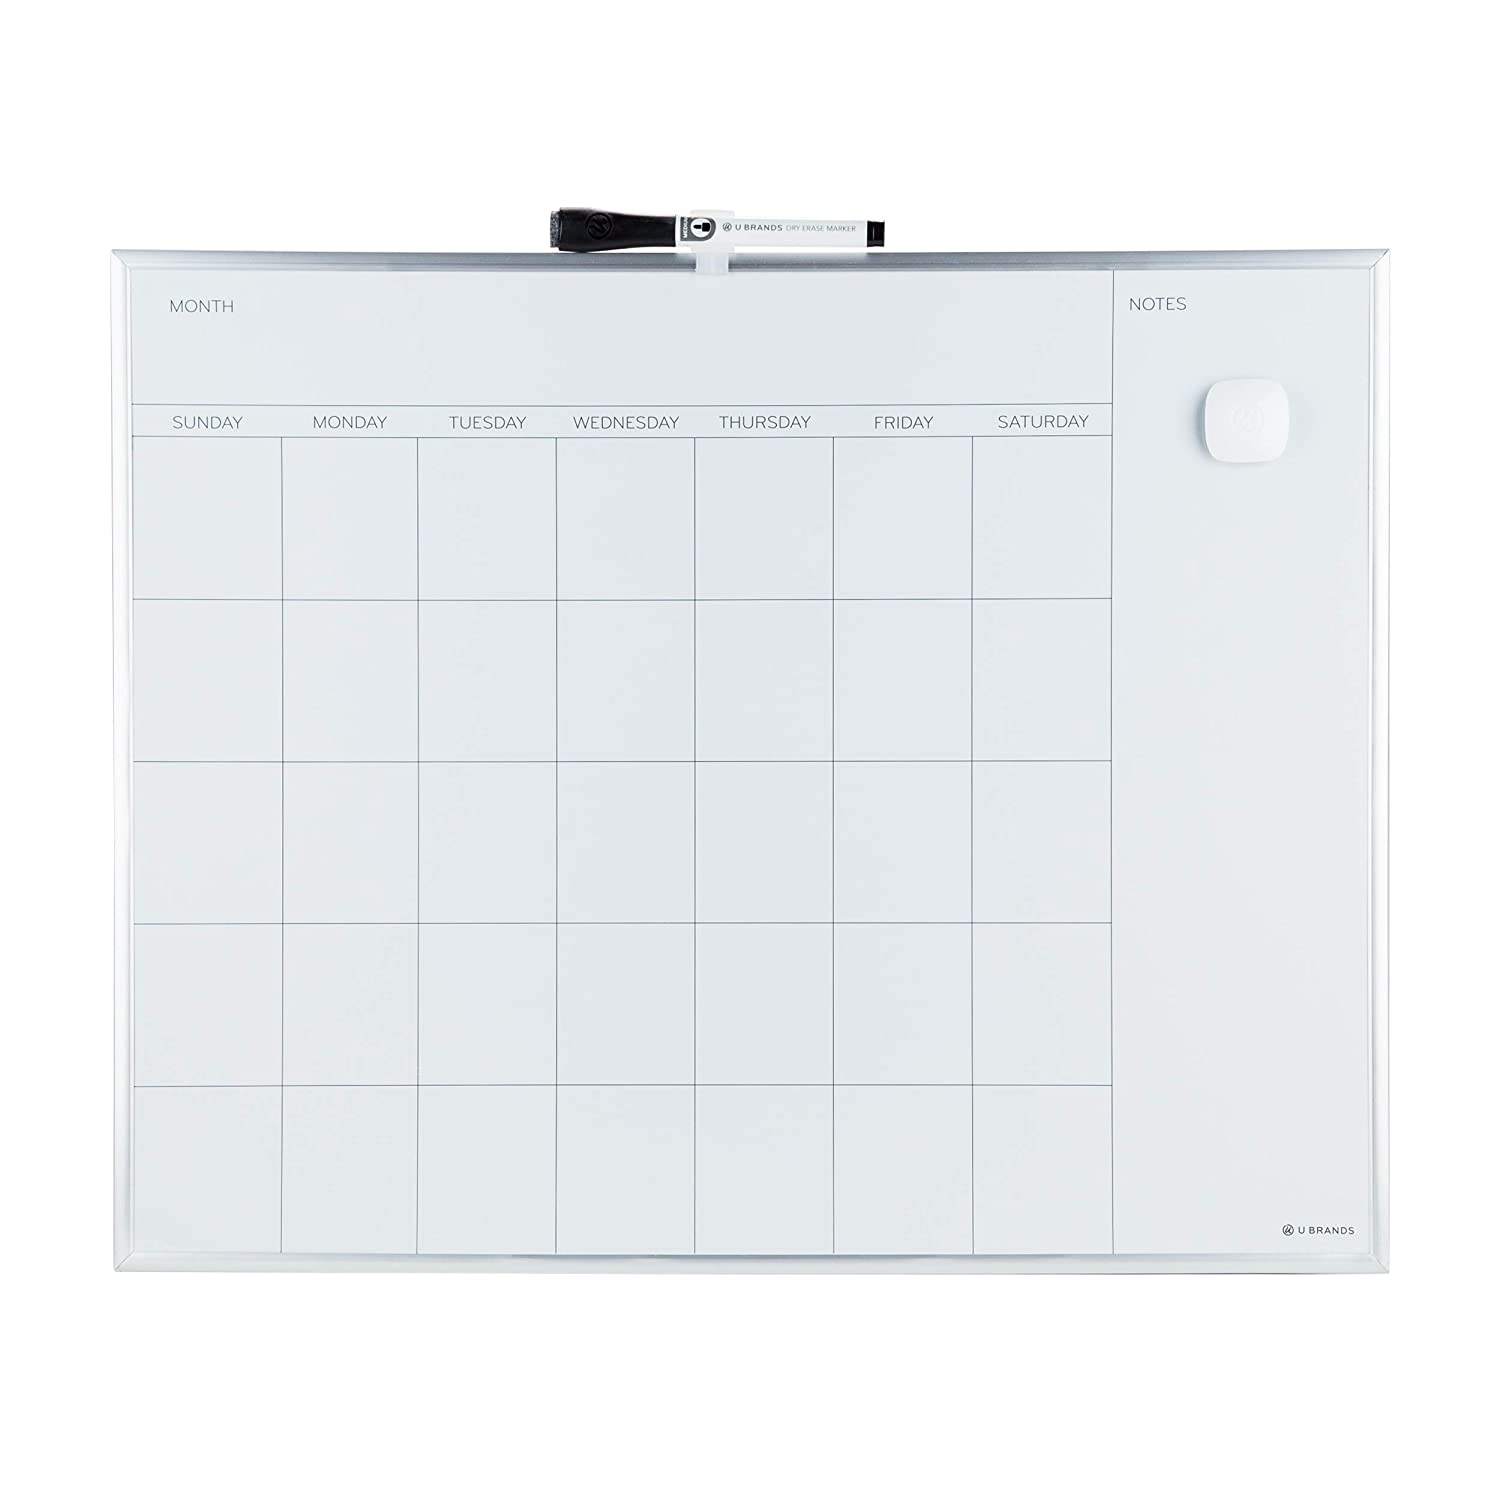 U Brands Magnetic Monthly Calendar Dry Erase Board, 20 x 16 Inches, Silver Aluminum Frame